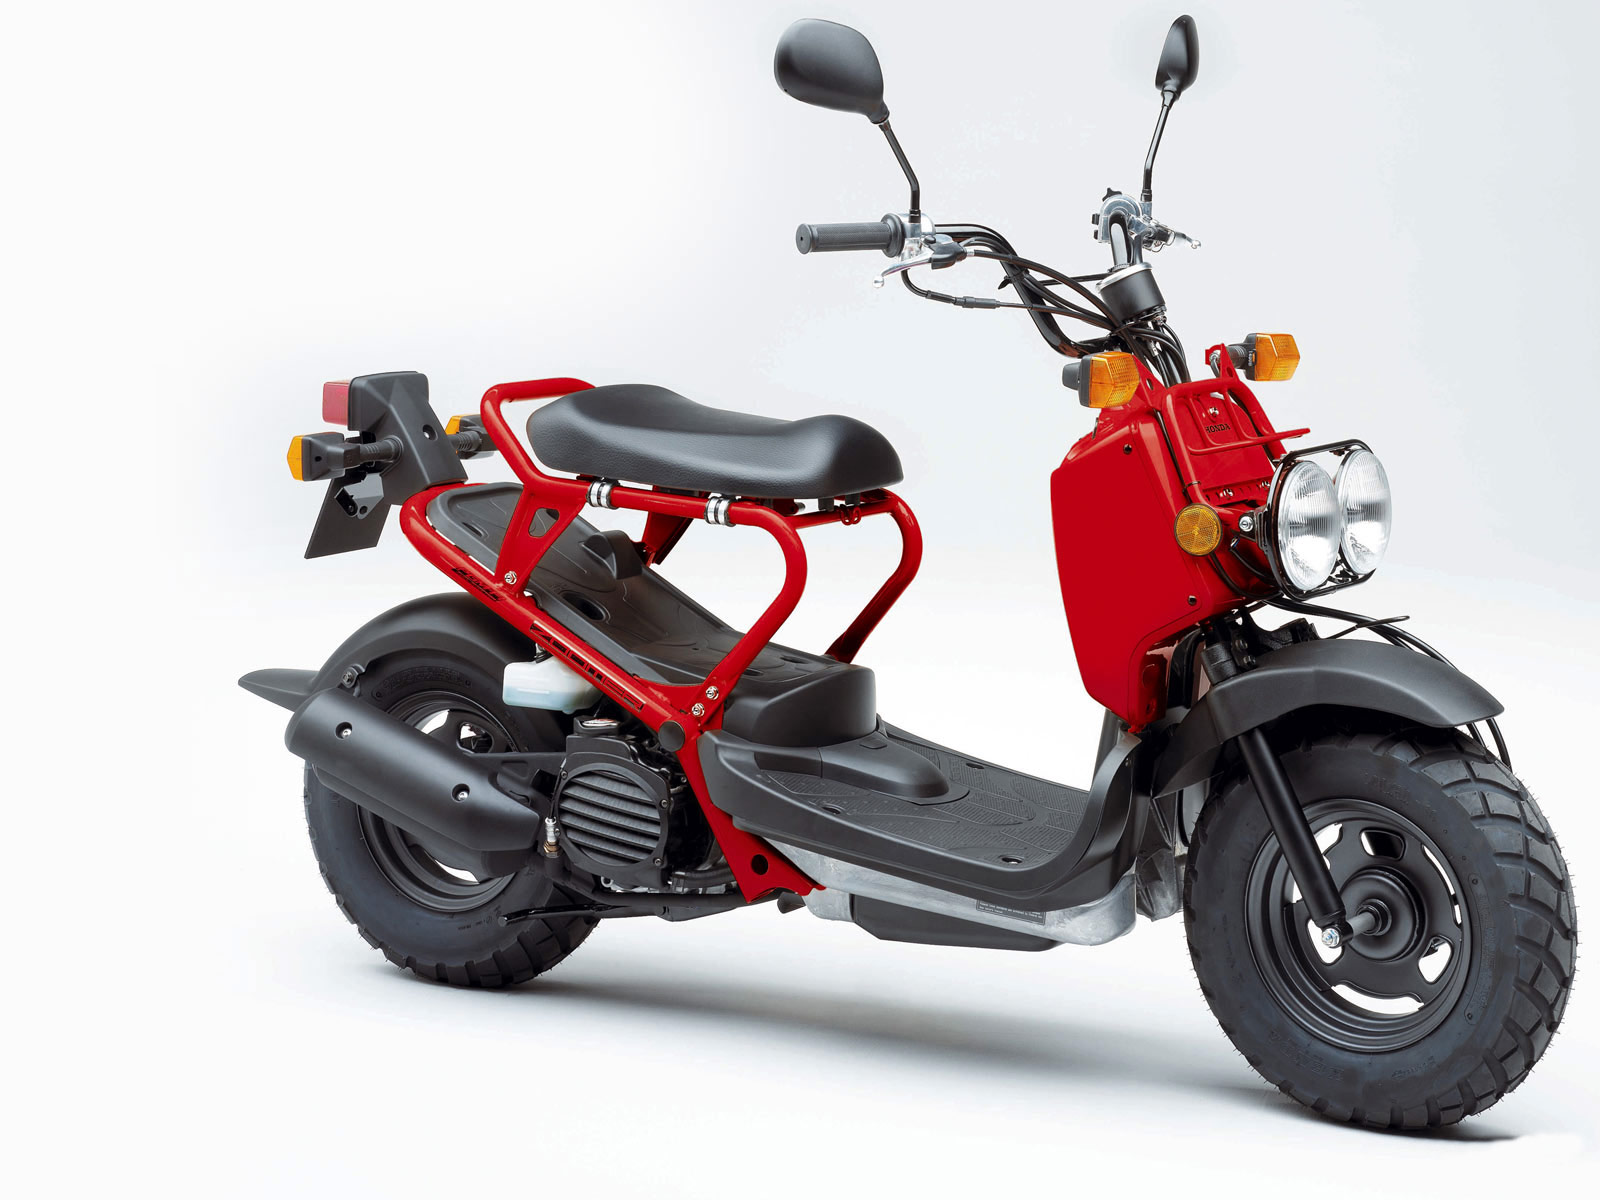 2005 honda zoomer scooter pictures accident lawyers info. Black Bedroom Furniture Sets. Home Design Ideas